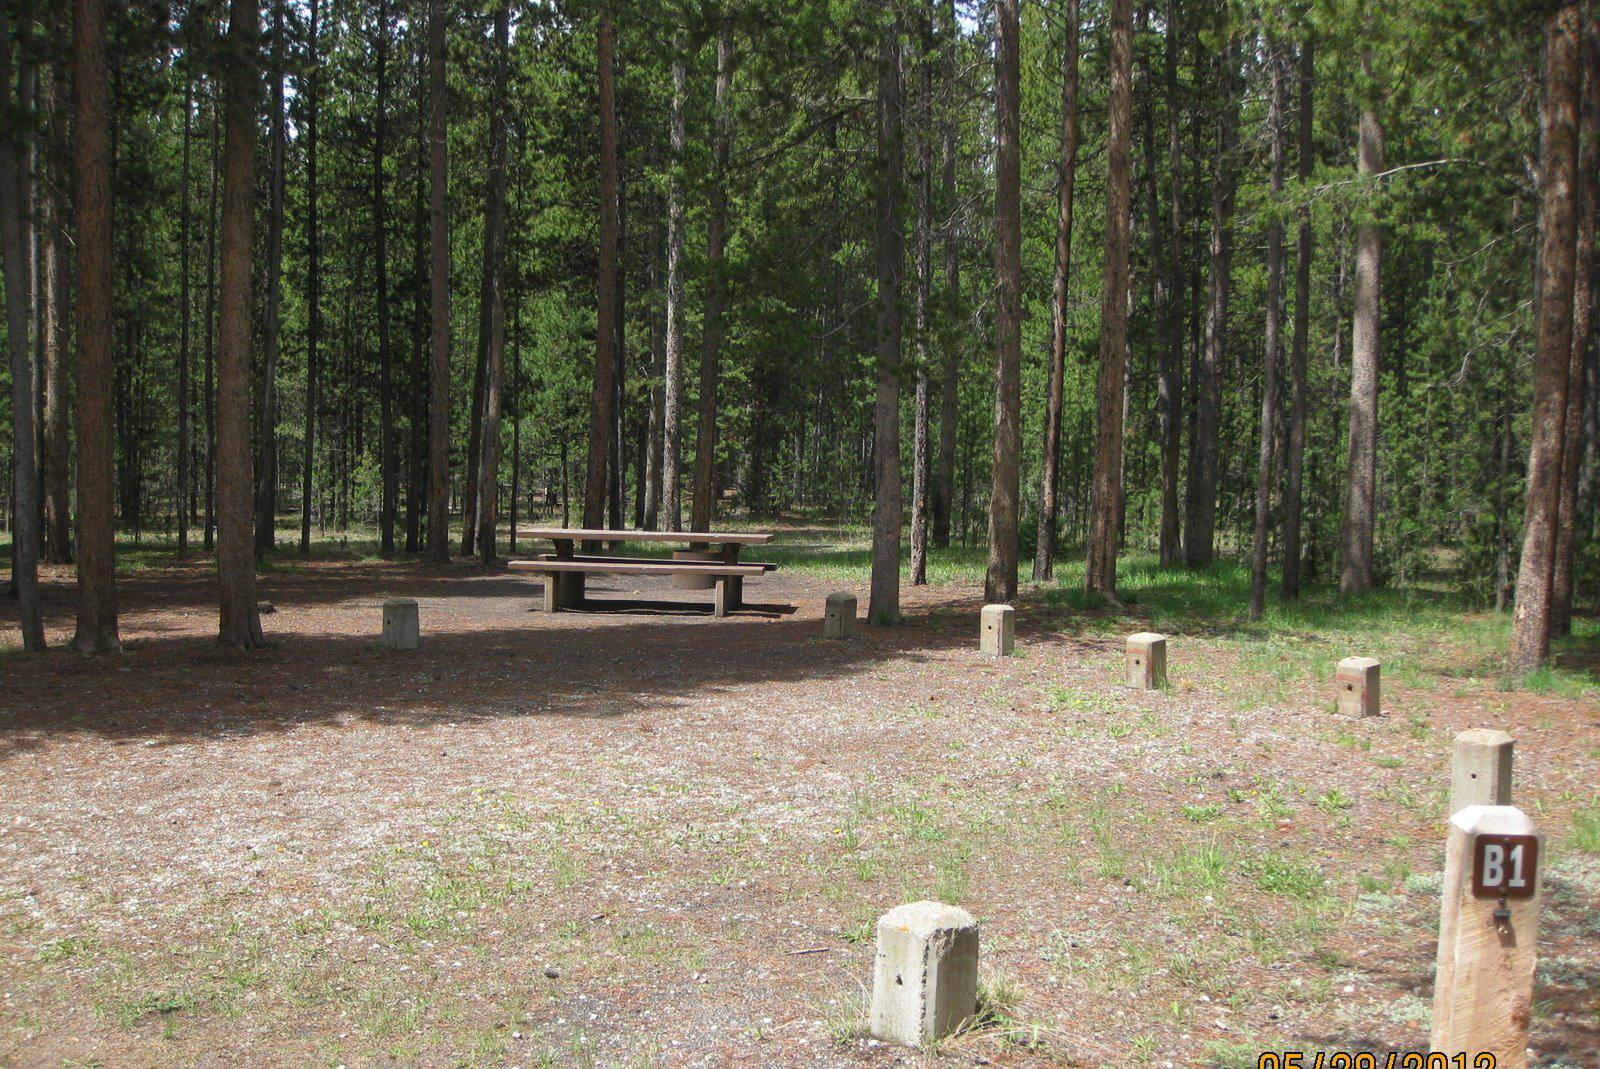 Site B1, surrounded by pine trees, picnic table & fire ringSite B1